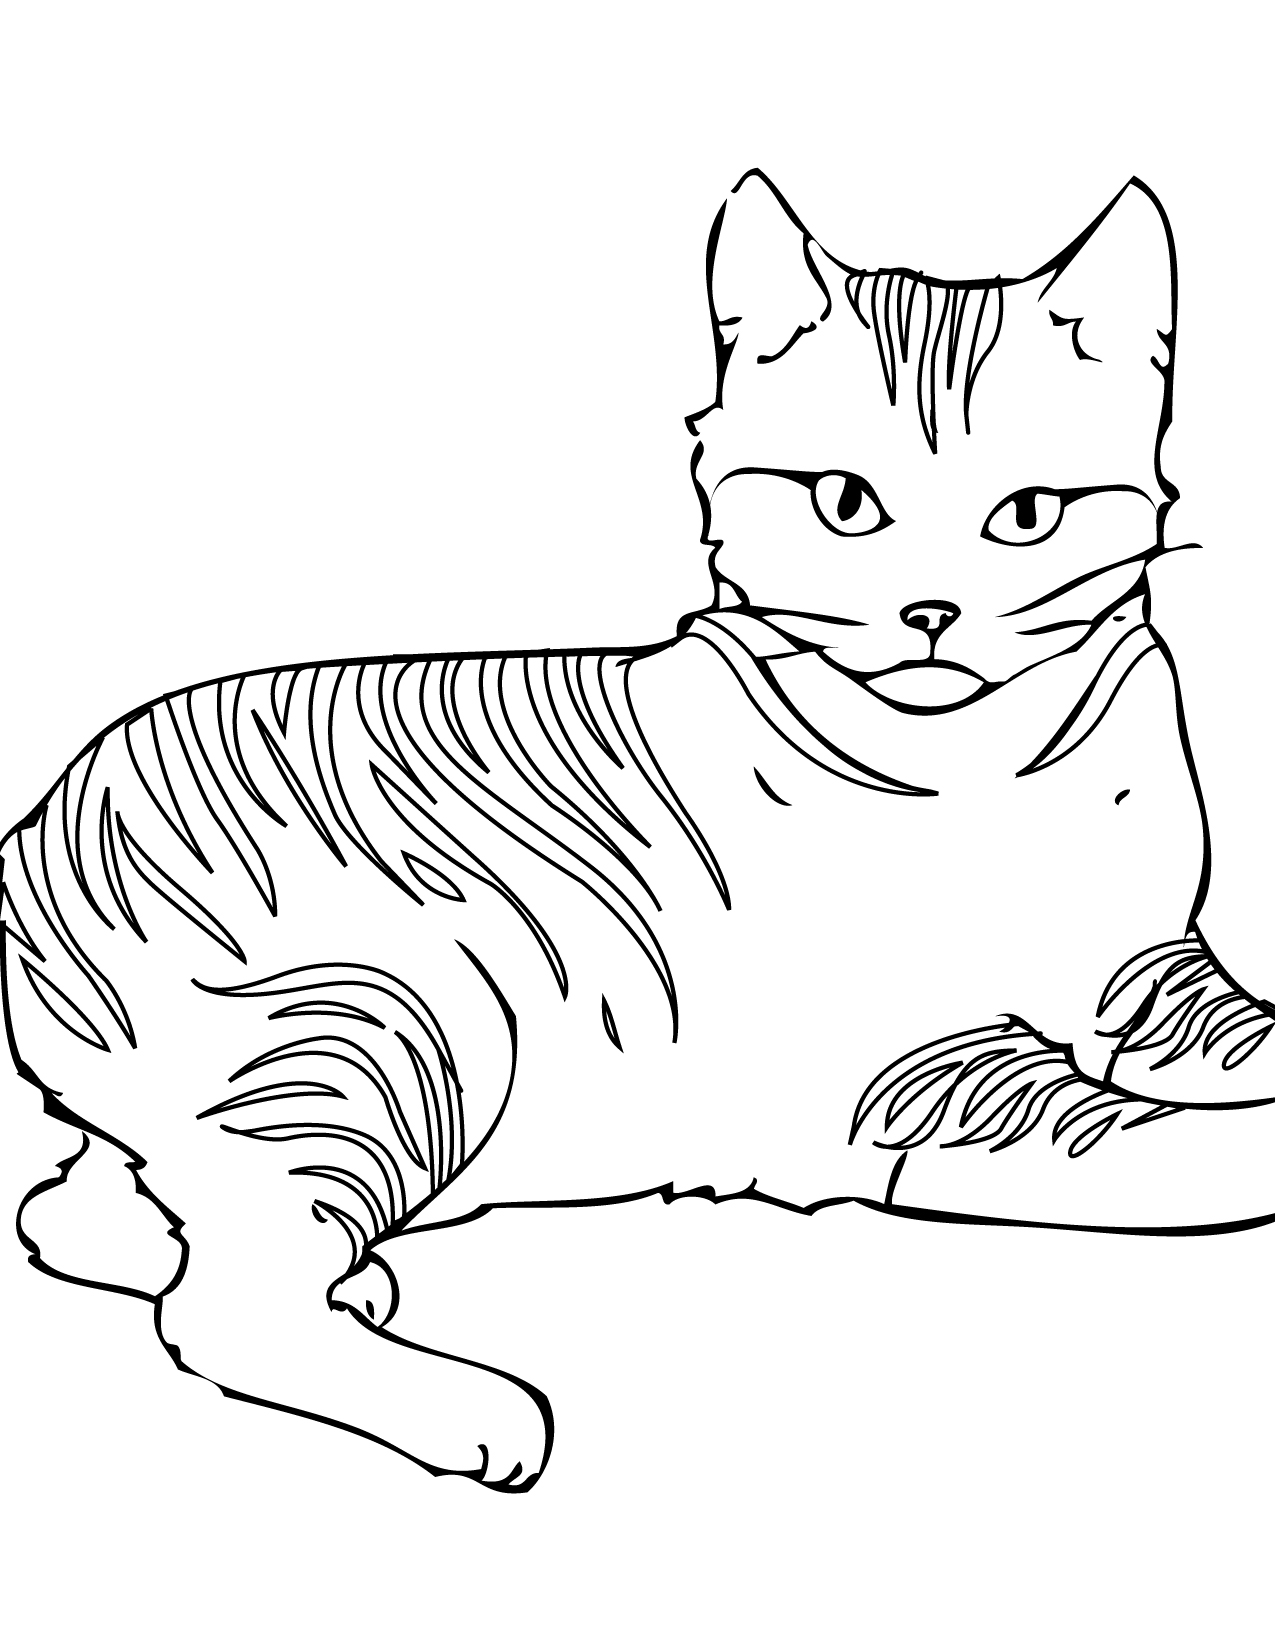 cat printable detailed cat coloring pages at getcoloringscom free printable cat